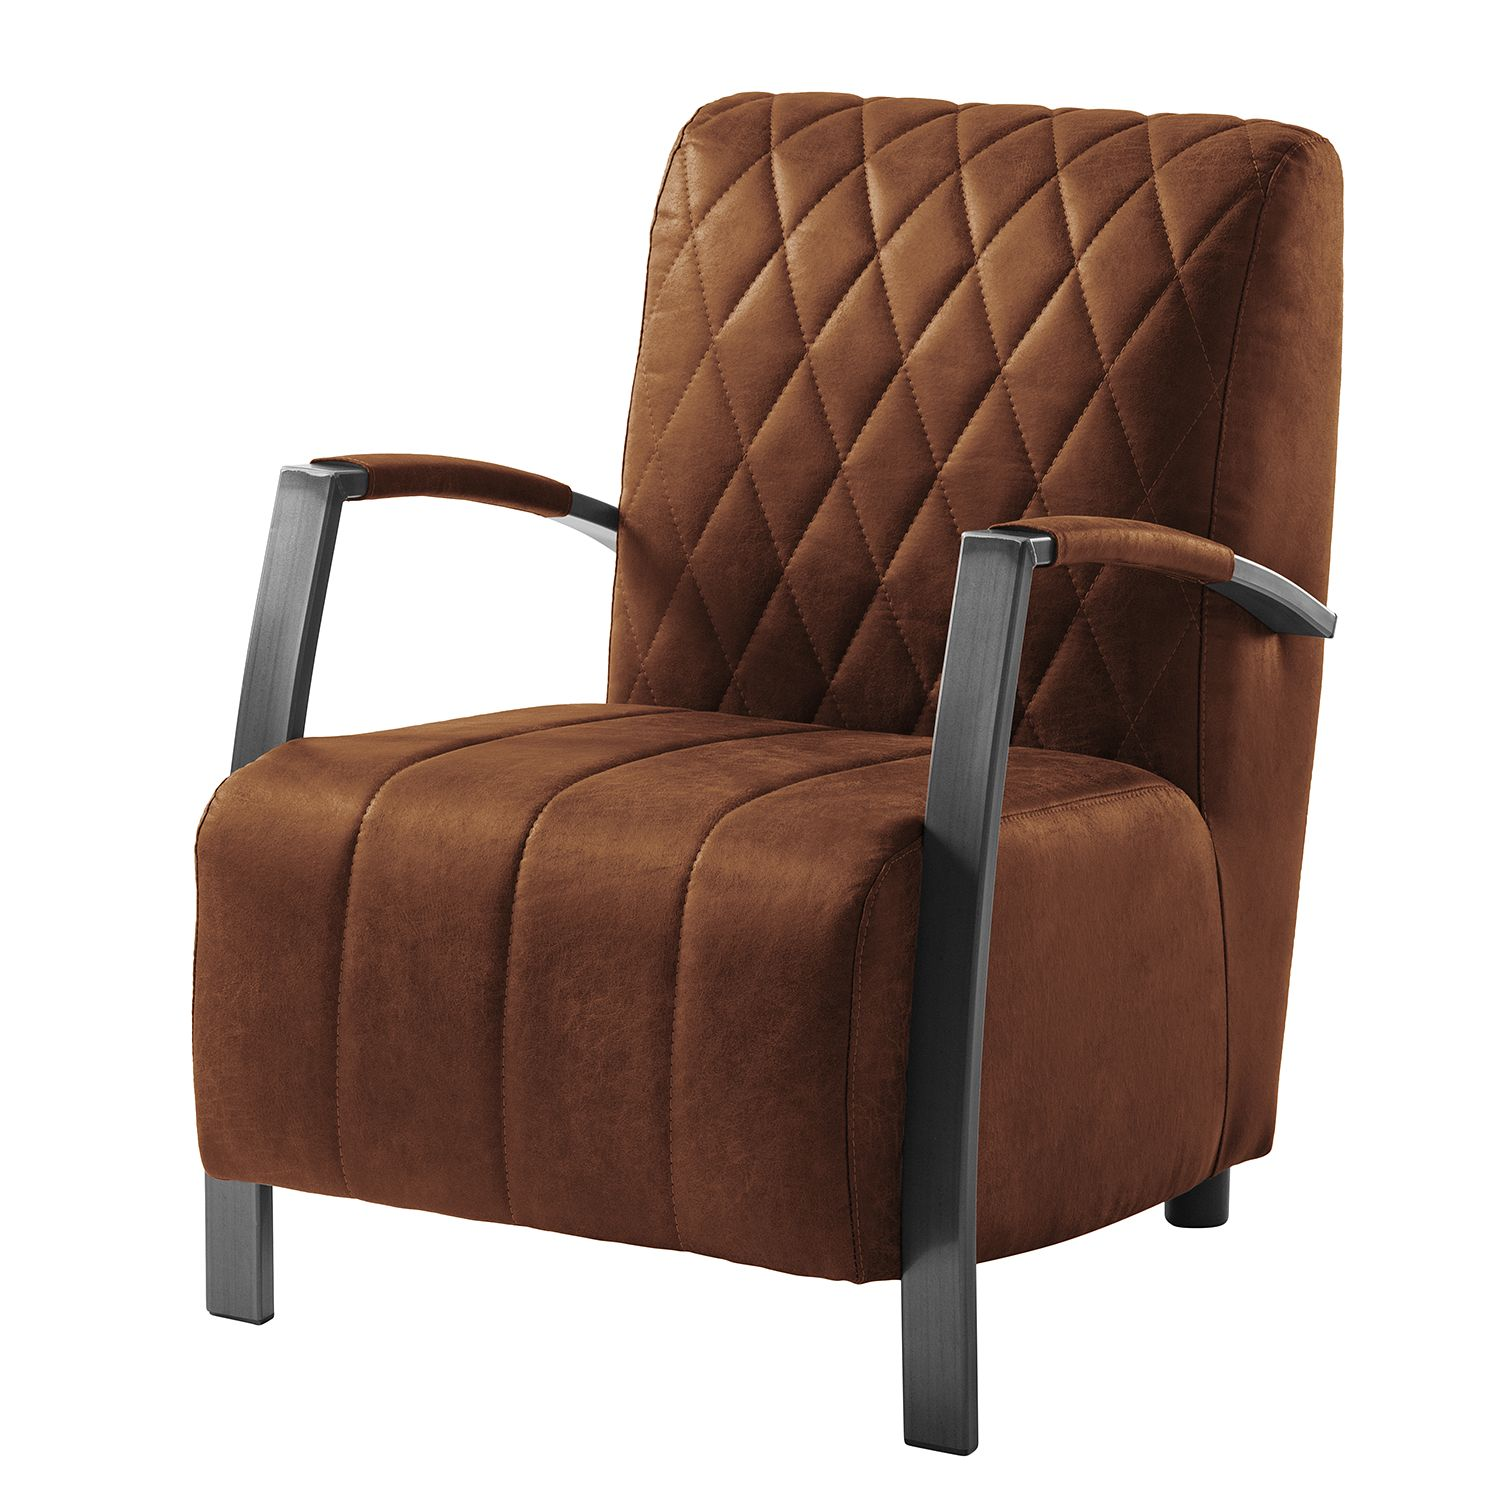 Fauteuil Straid, ars manufacti